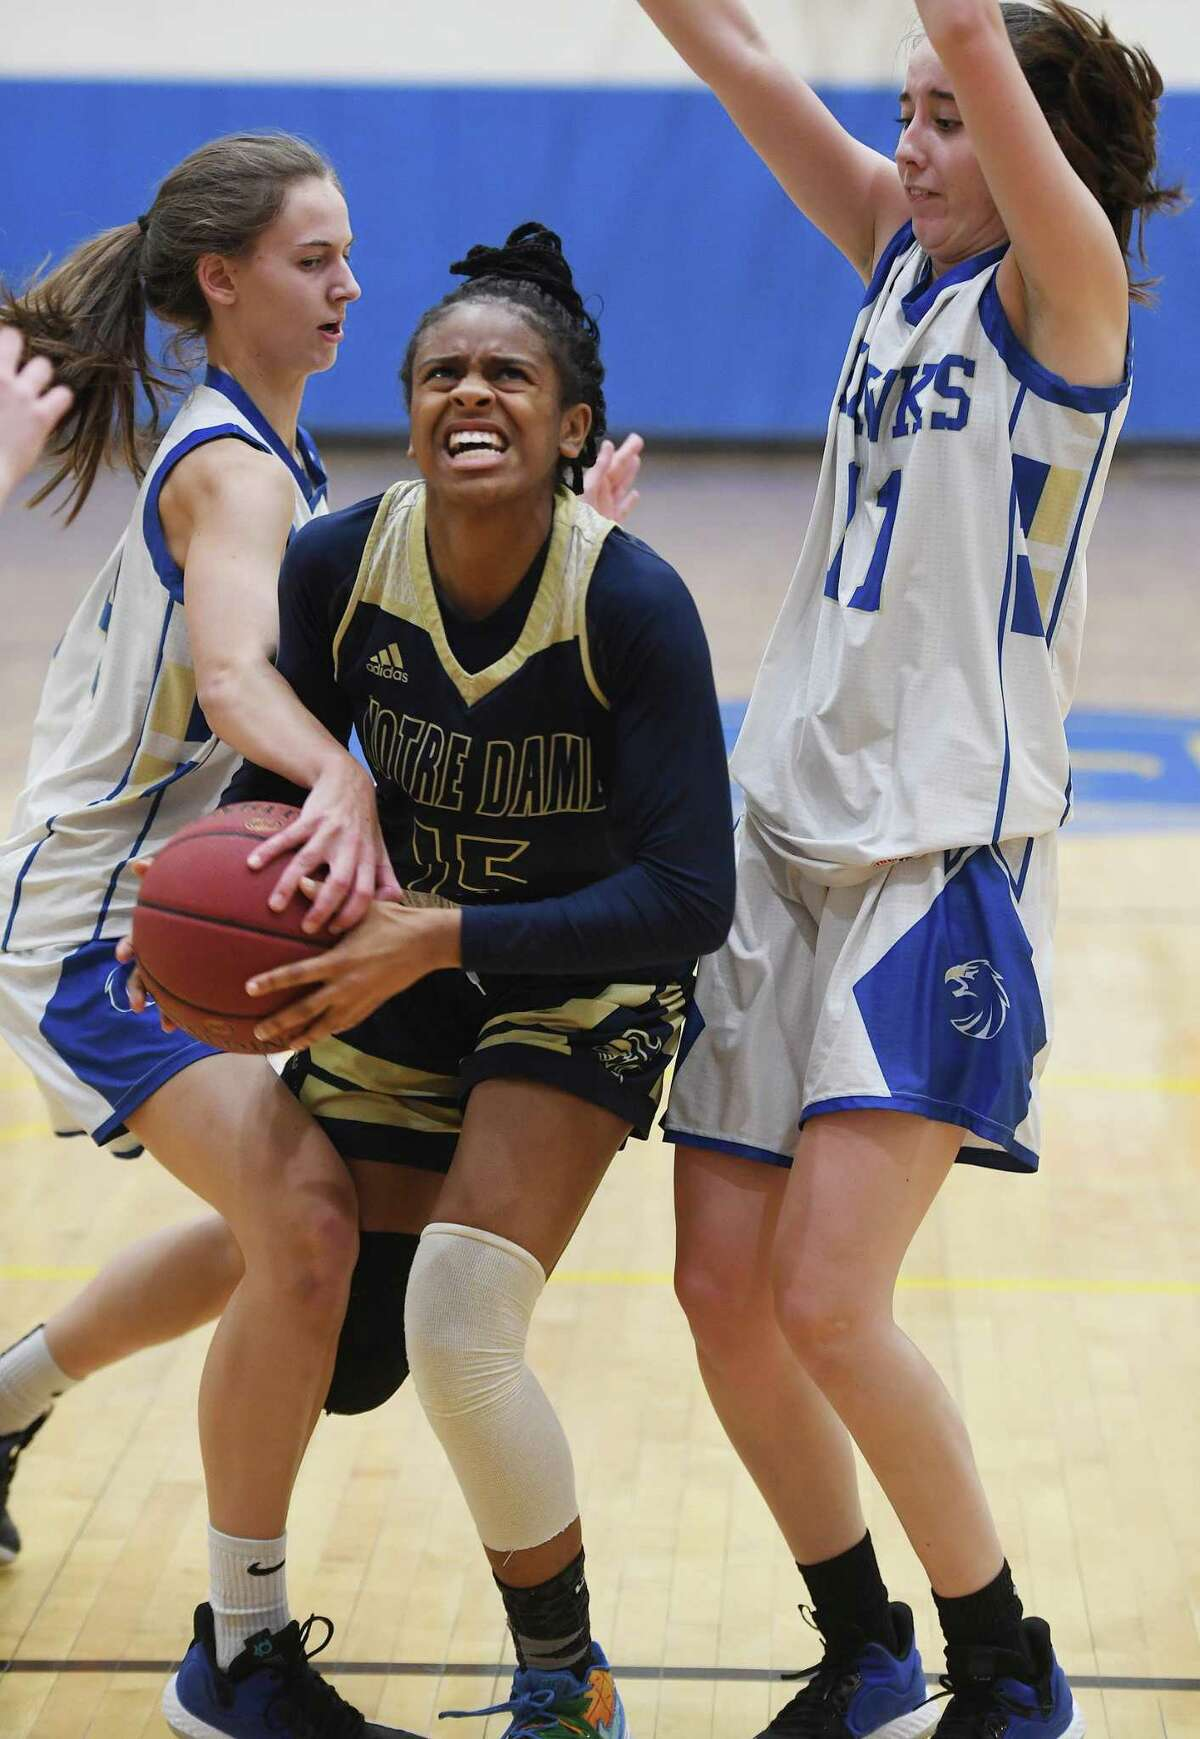 Notre Dame of Fairfield's Ciara Brown drives to the basket defended by Newtown's Juliette Cryder, left, and Carlie Smith in the first half of their SWC girls basketball game at Newtown High School in Newtown, Conn. on Thursday January 23, 2020.